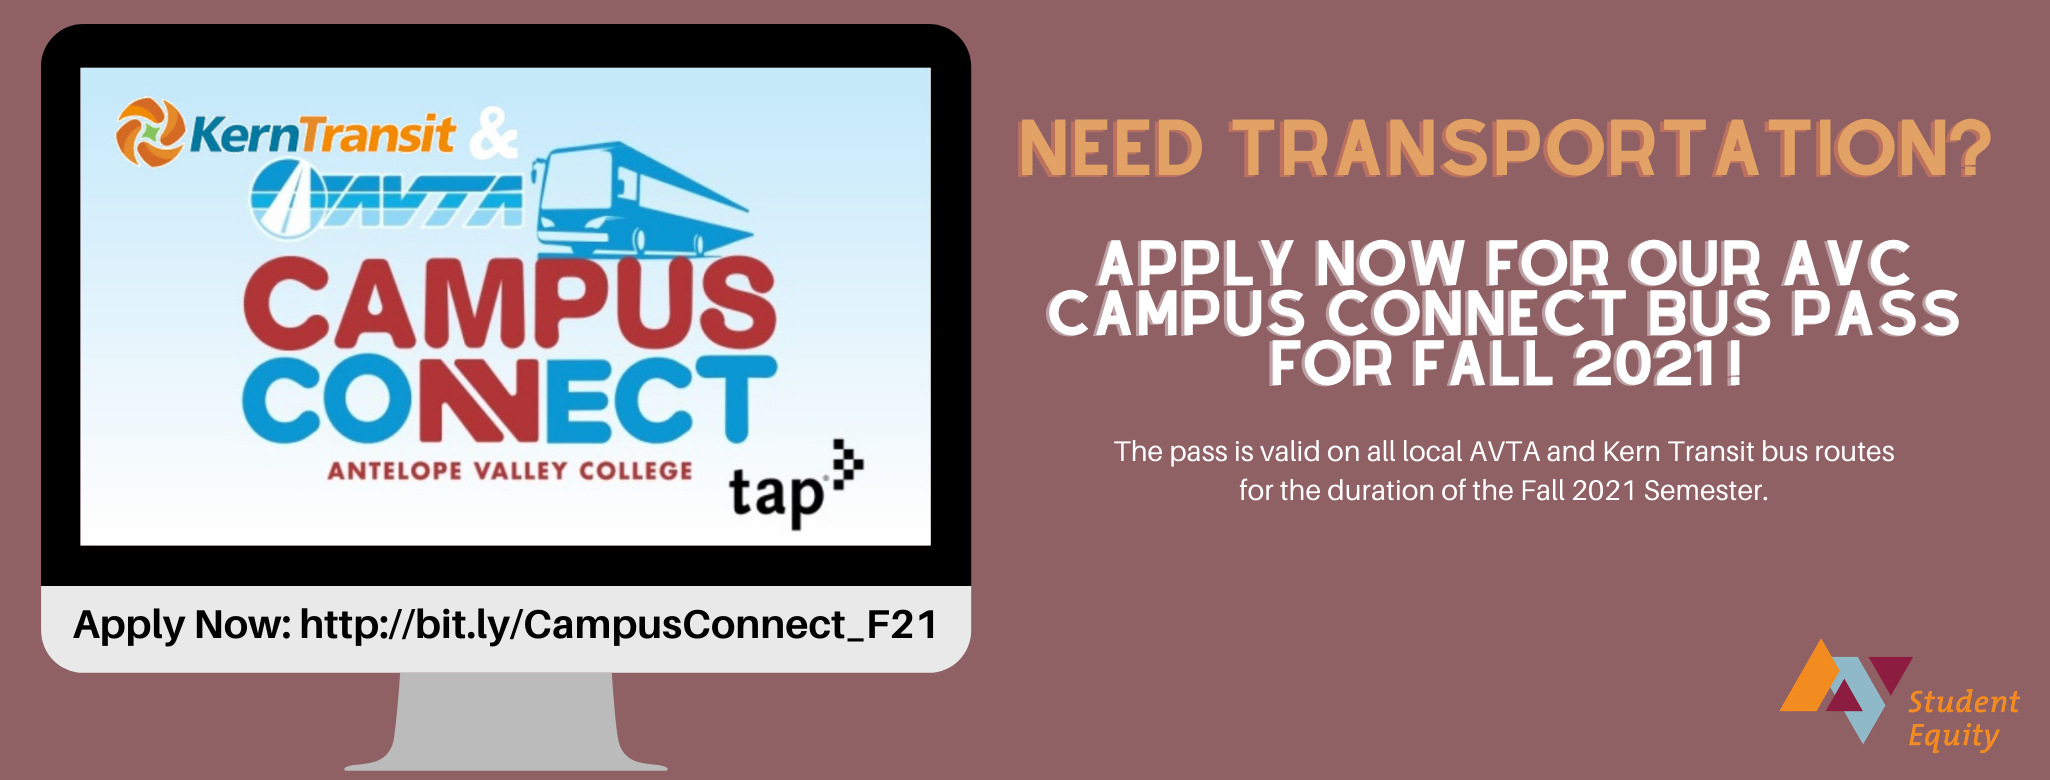 Campus Connect Image with link